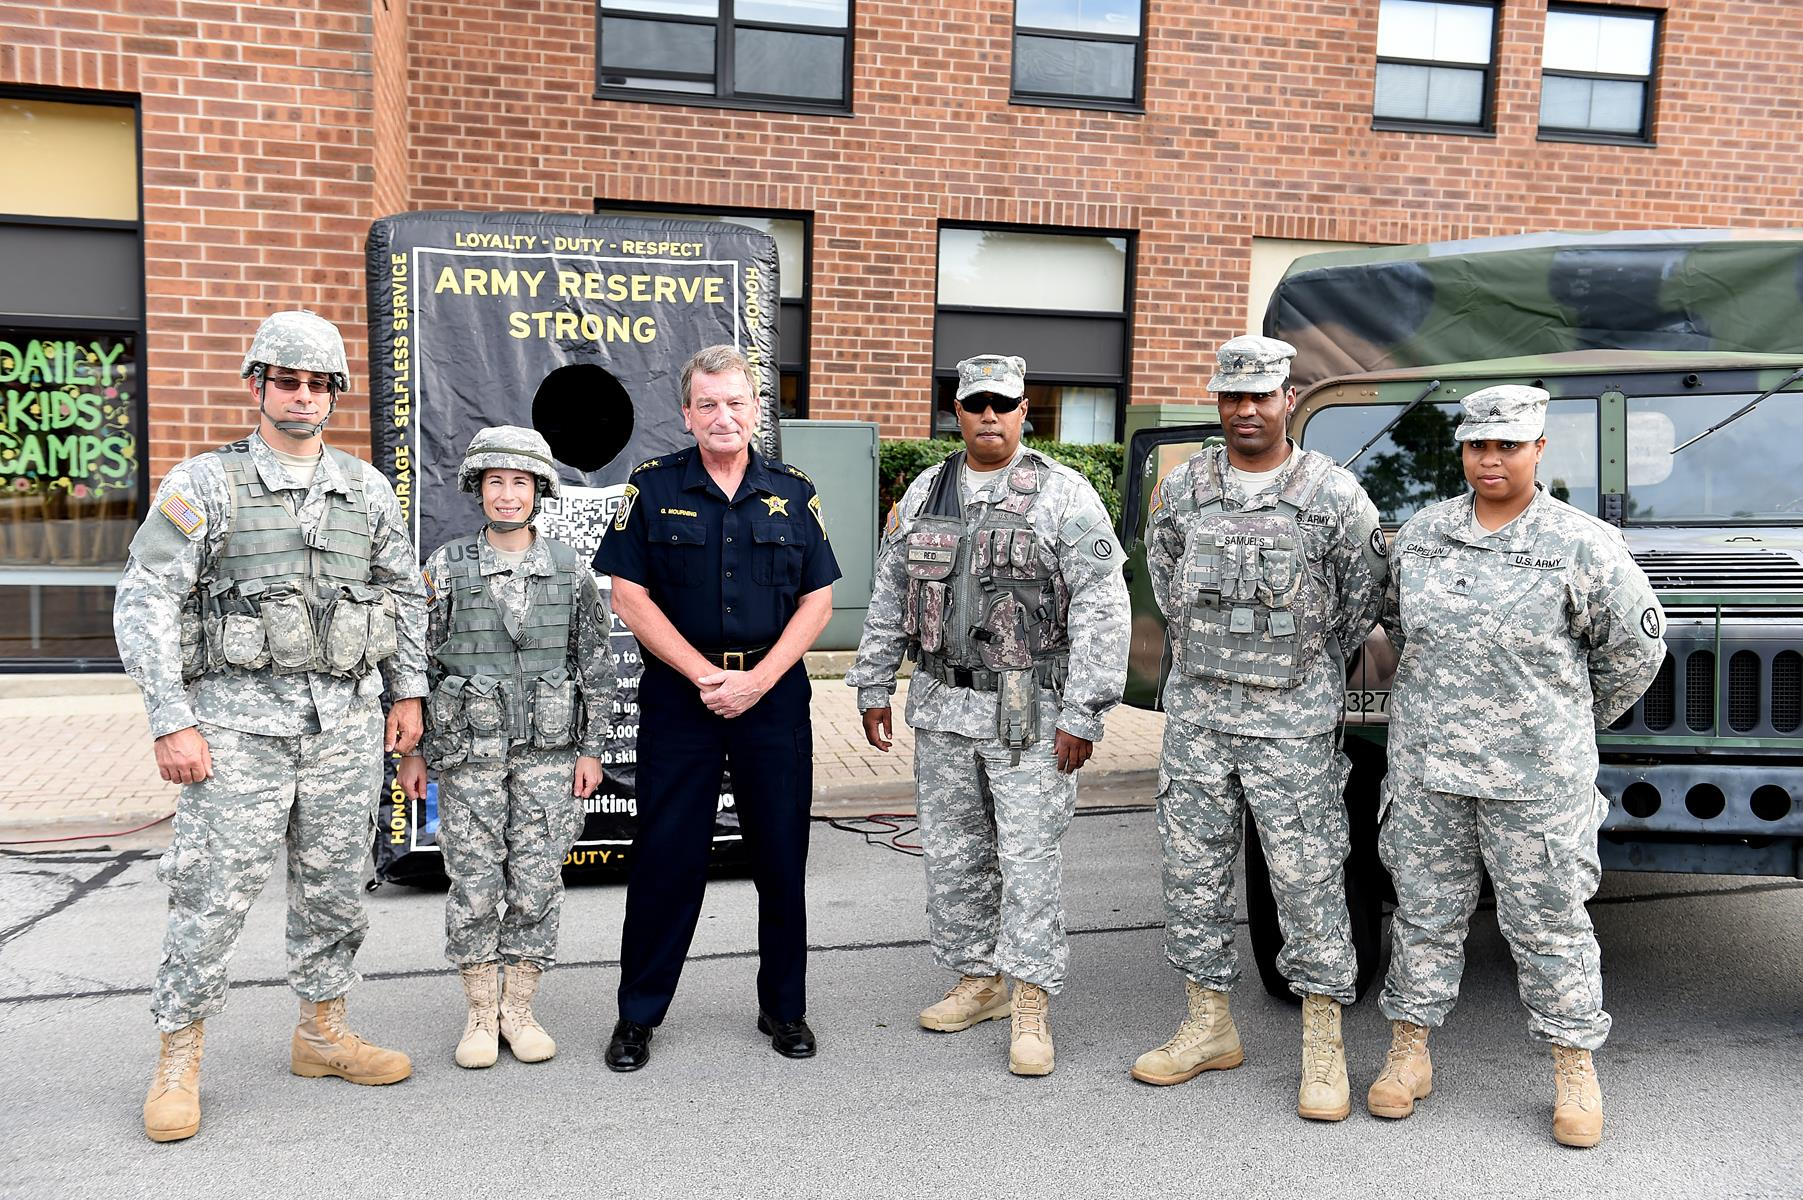 Army Reserve soldiers partner with local police for National